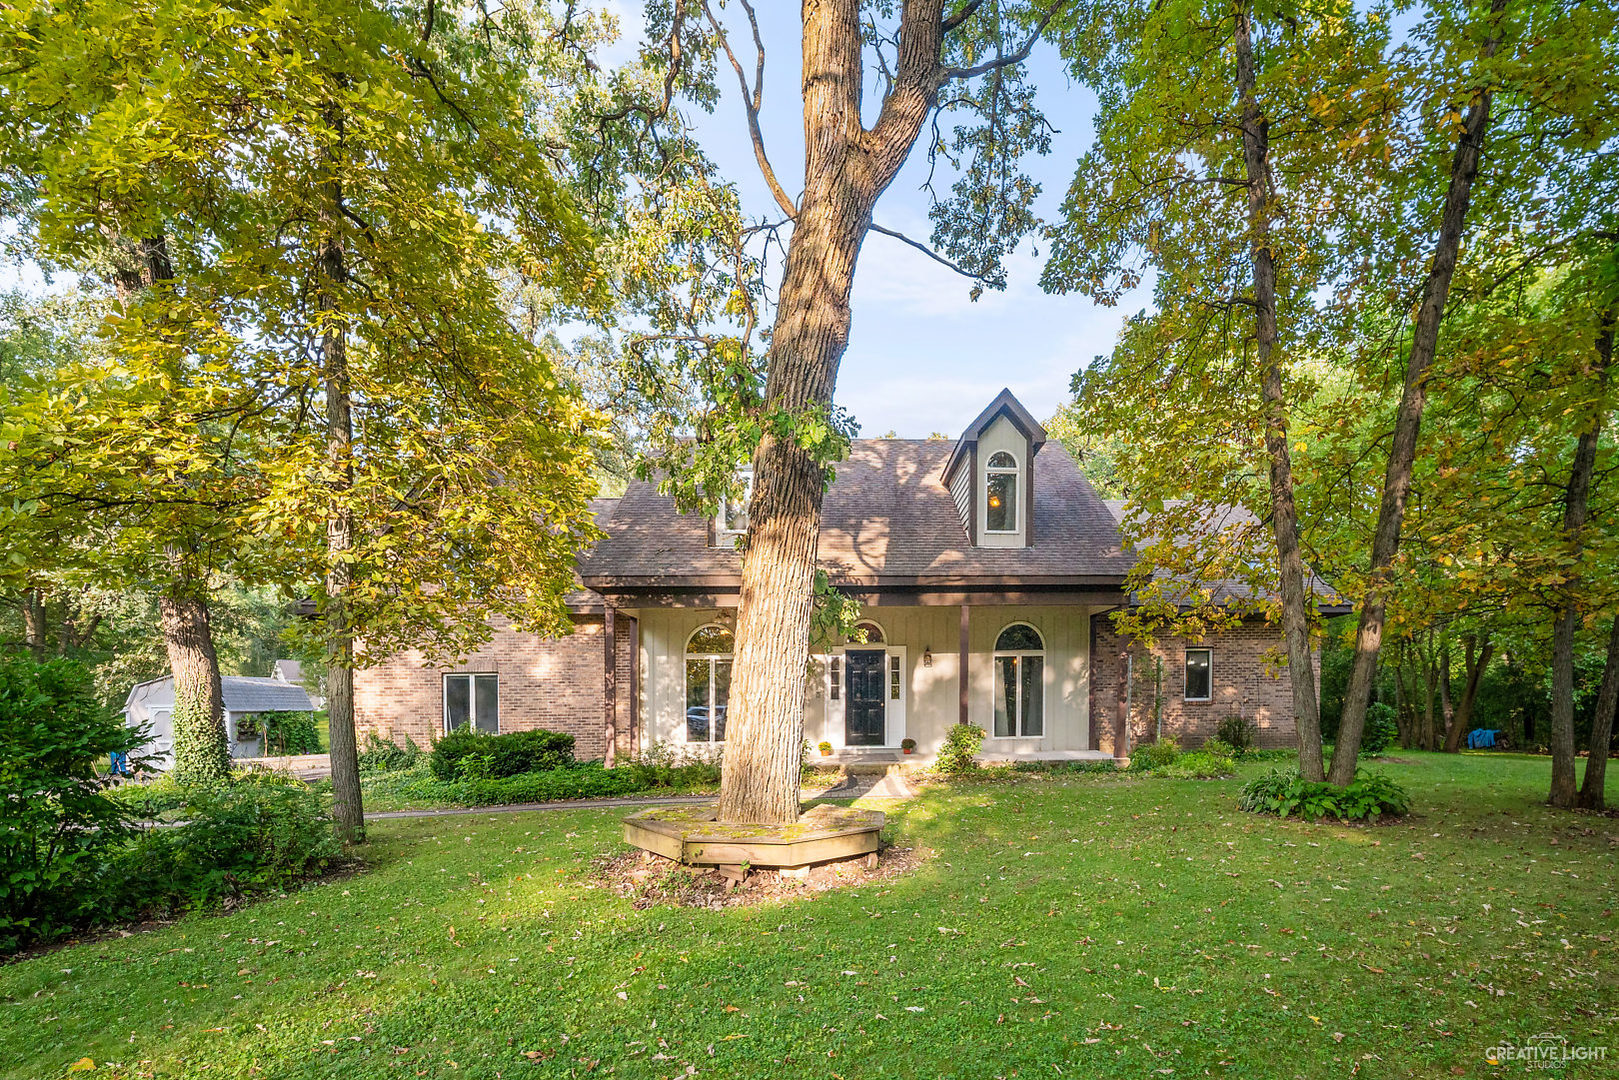 Photo for 11N571 Peplow Road, Hampshire, IL 60140 (MLS # 10845436)